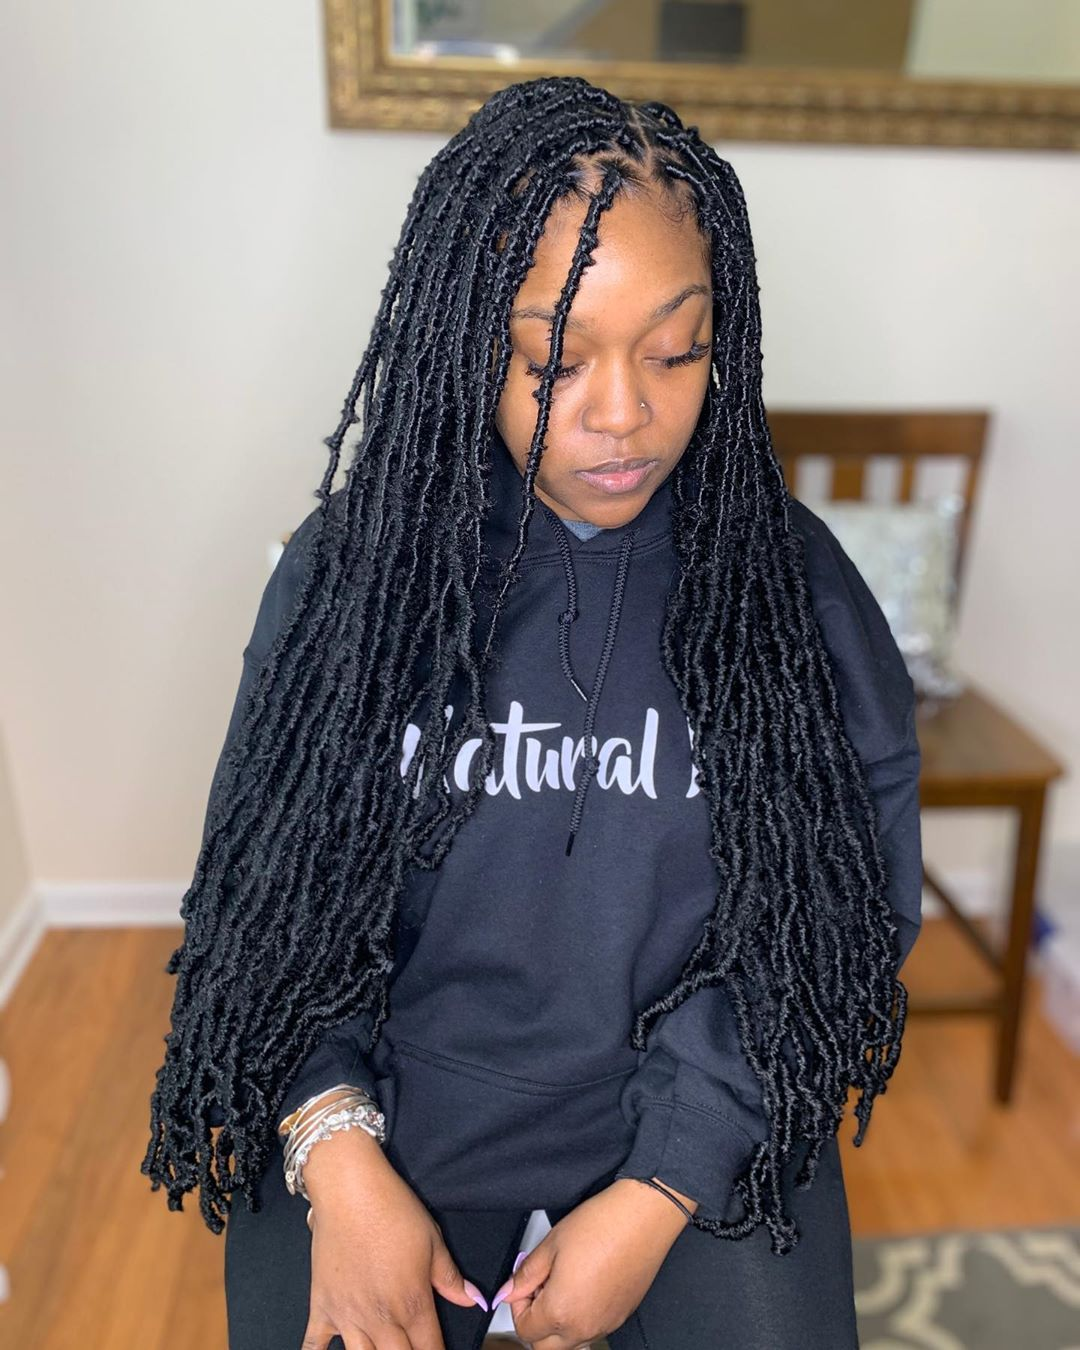 Glambysham On Instagram Waist Length Soft Locs Appointments Available Dm Text To Book In 2020 Short Hair Designs Braids Hairstyles Pictures Locs Hairstyles